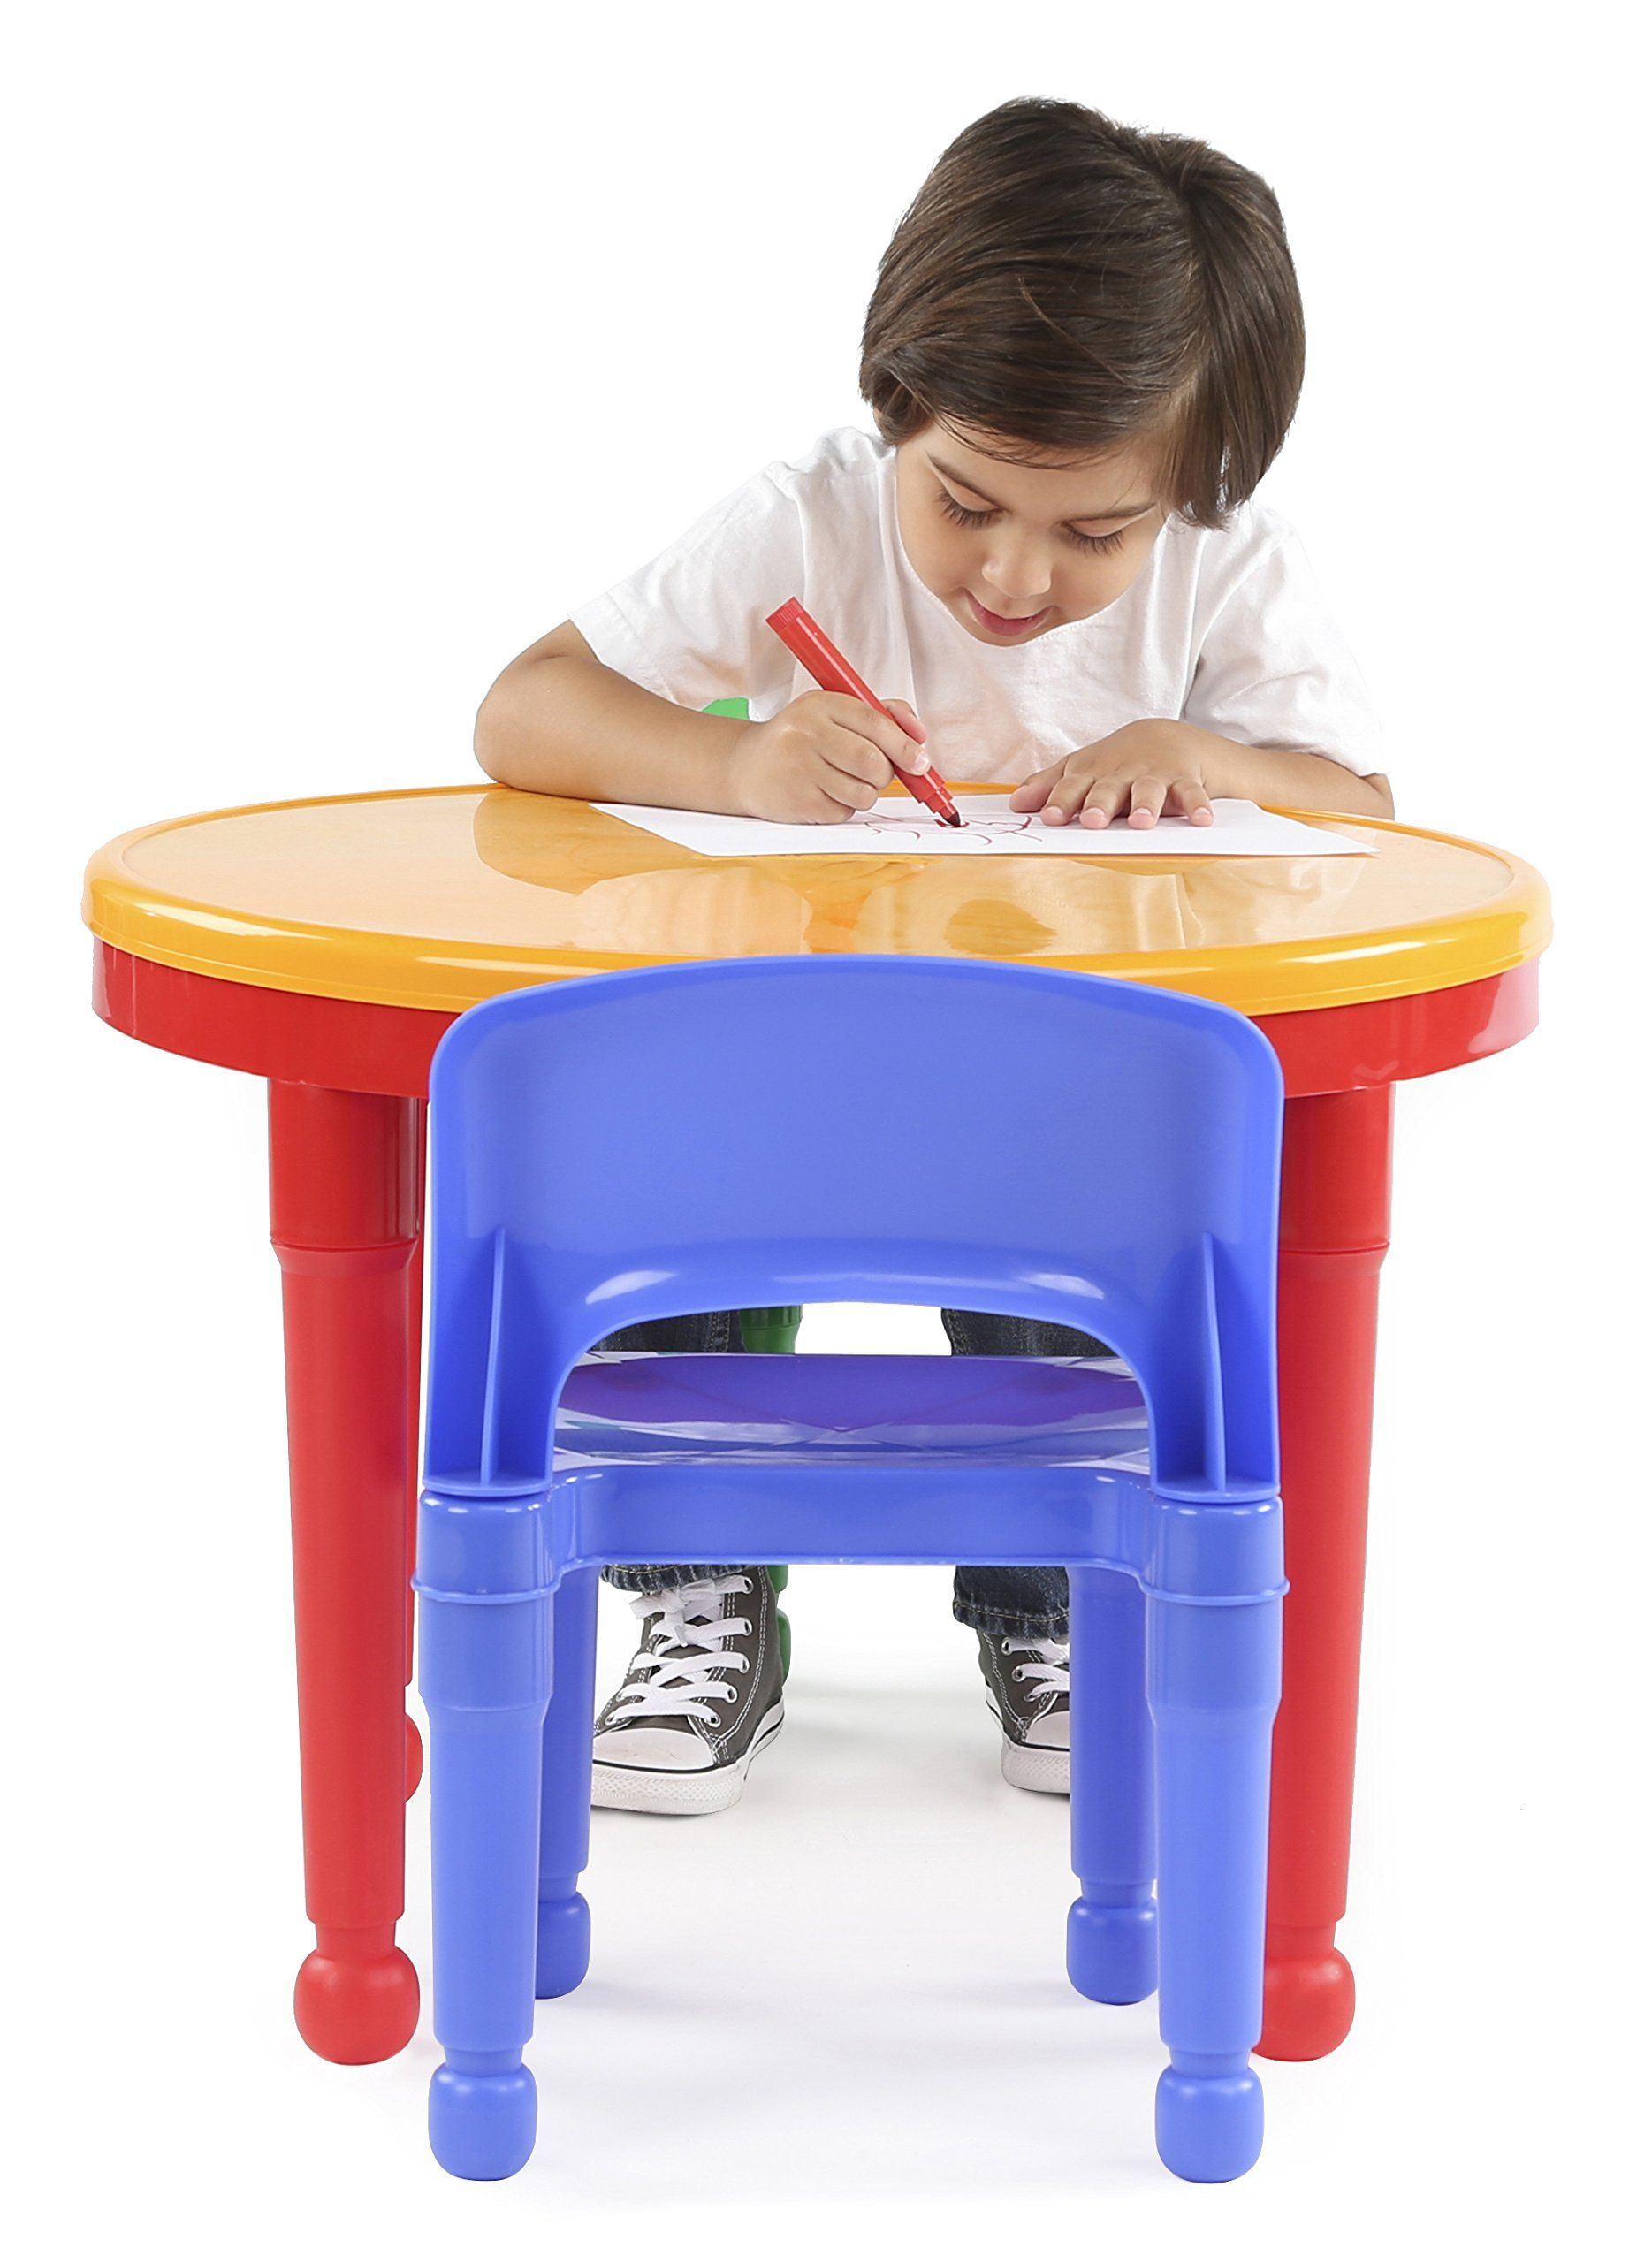 Kidkraft Heart Table And Chair Set Tot Tutors Kids 2 In 1 Plastic Lego Compatible Activity Table And